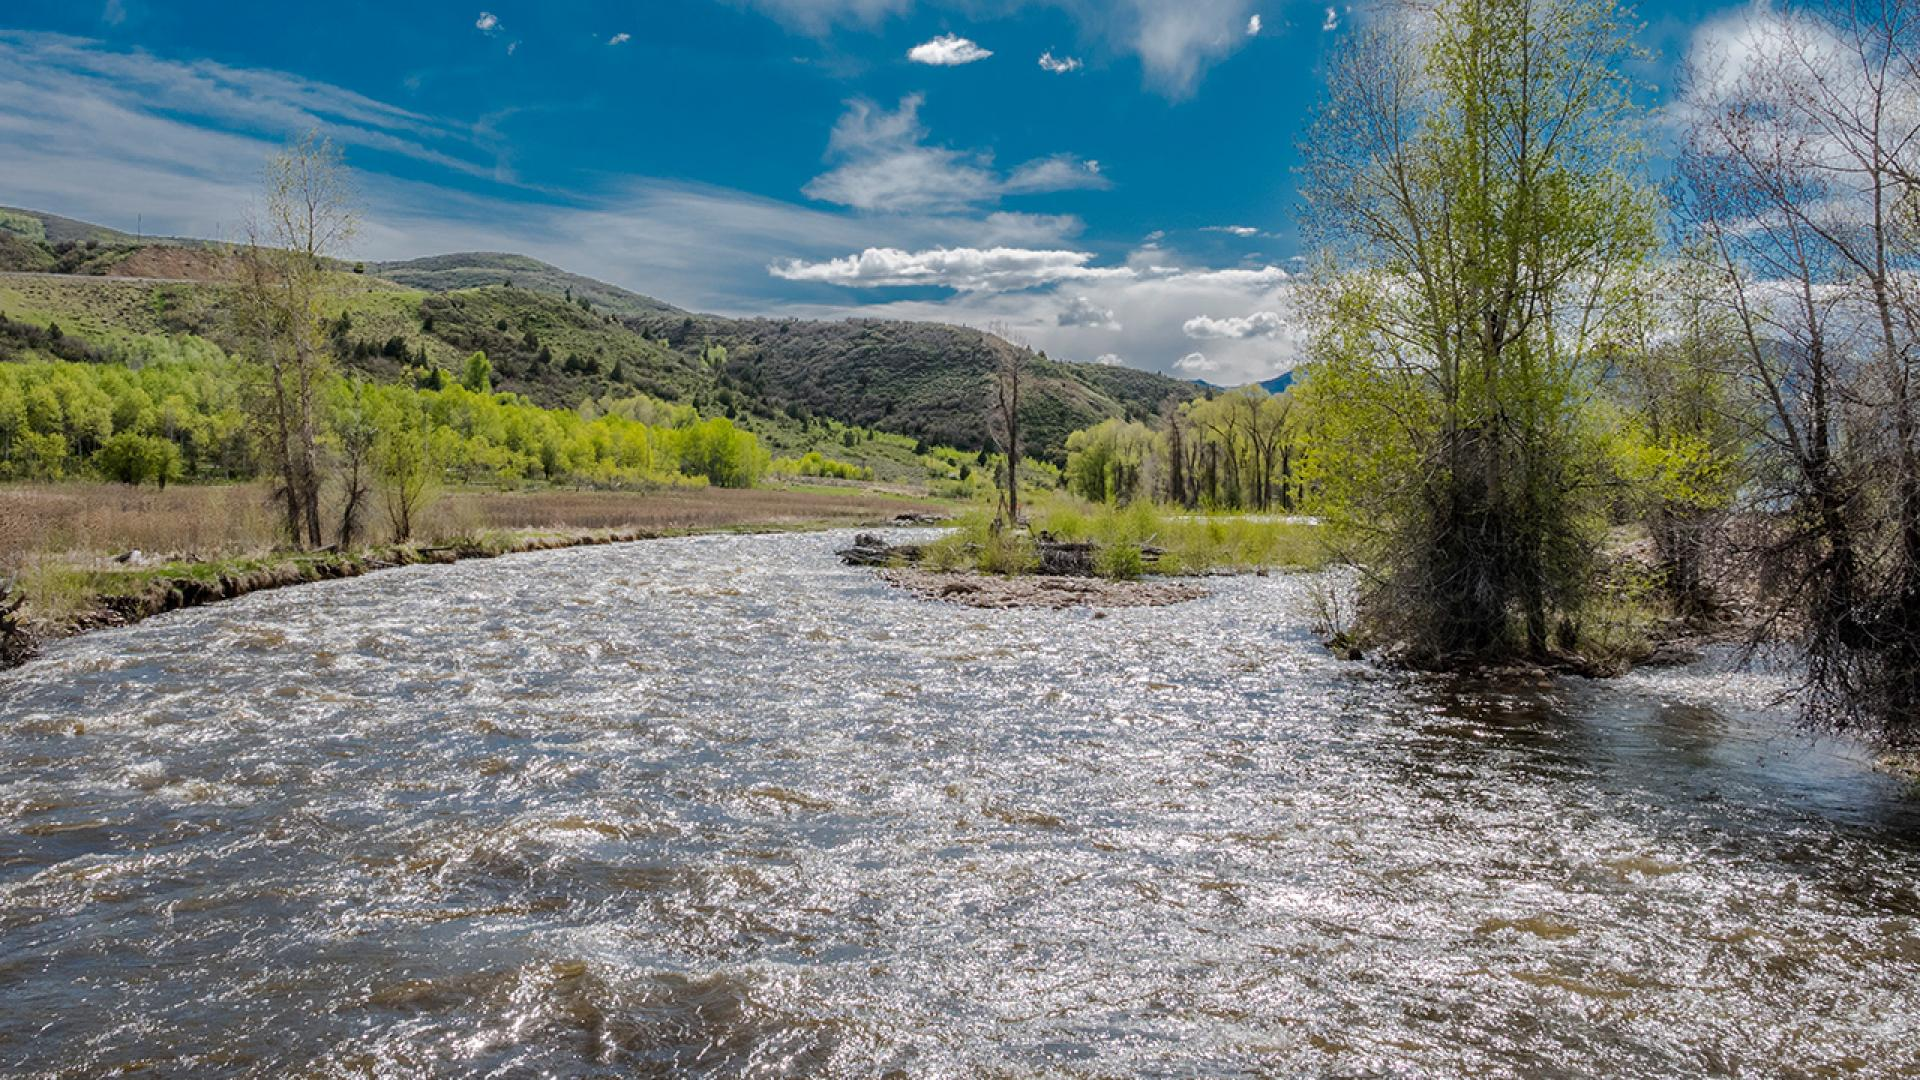 Sparkling, flowing water of the Provo River in Wasatch County, Utah.